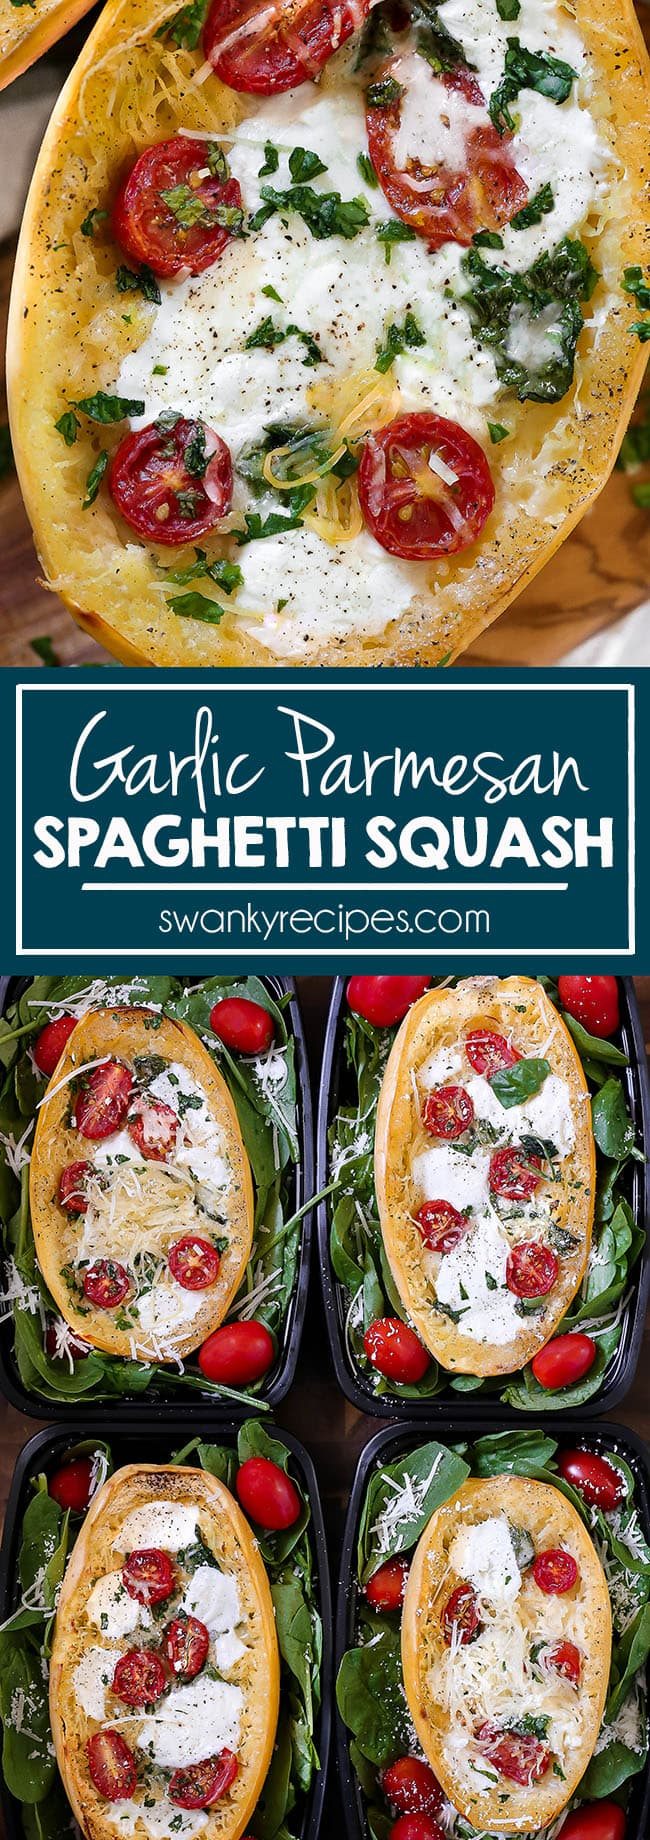 Garlic Parmesan Spaghetti Squash that is oven roasted for a healthy dinner. Prepared for meal planning and served in meal plan kits.